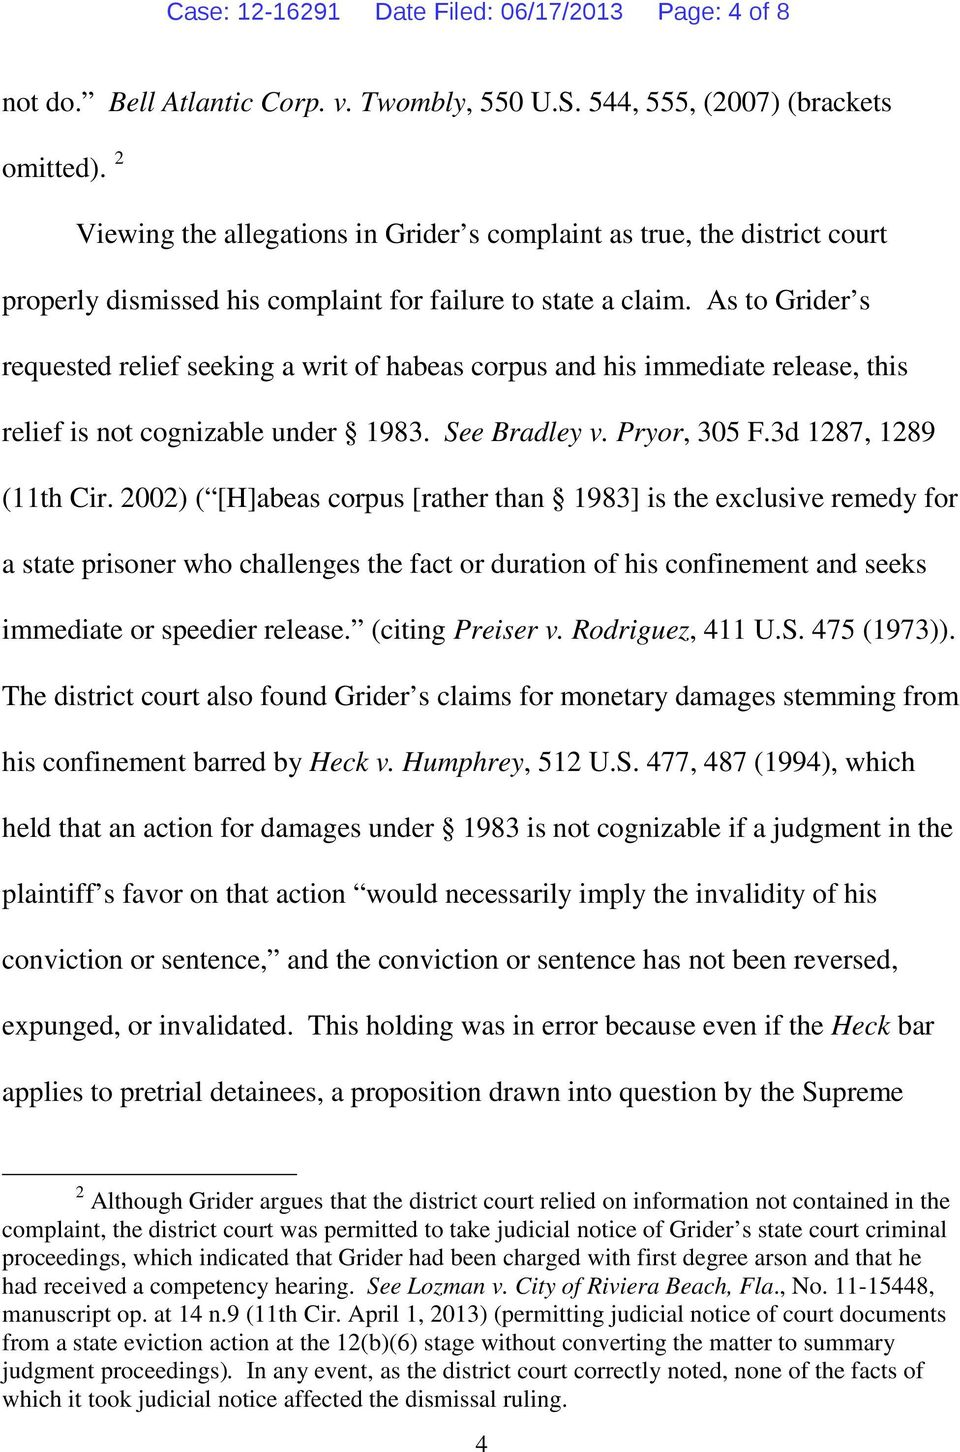 As to Grider s requested relief seeking a writ of habeas corpus and his immediate release, this relief is not cognizable under 1983. See Bradley v. Pryor, 305 F.3d 1287, 1289 (11th Cir.